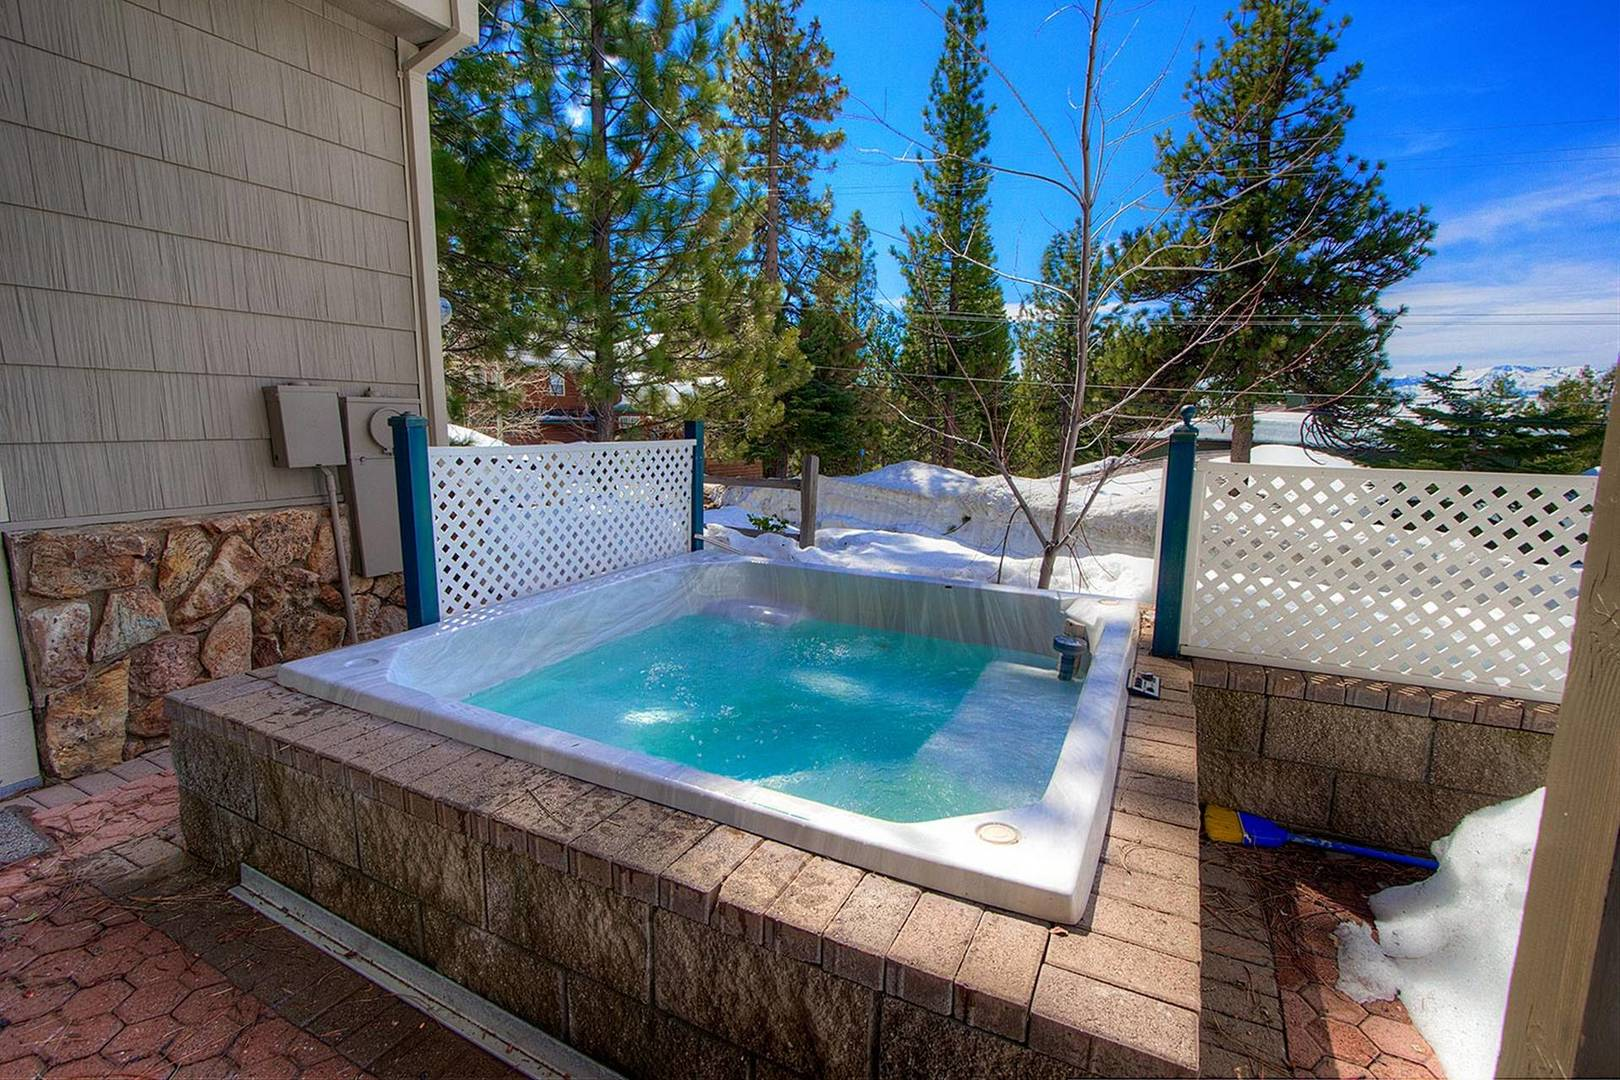 hch0721 lake tahoe vacation rental